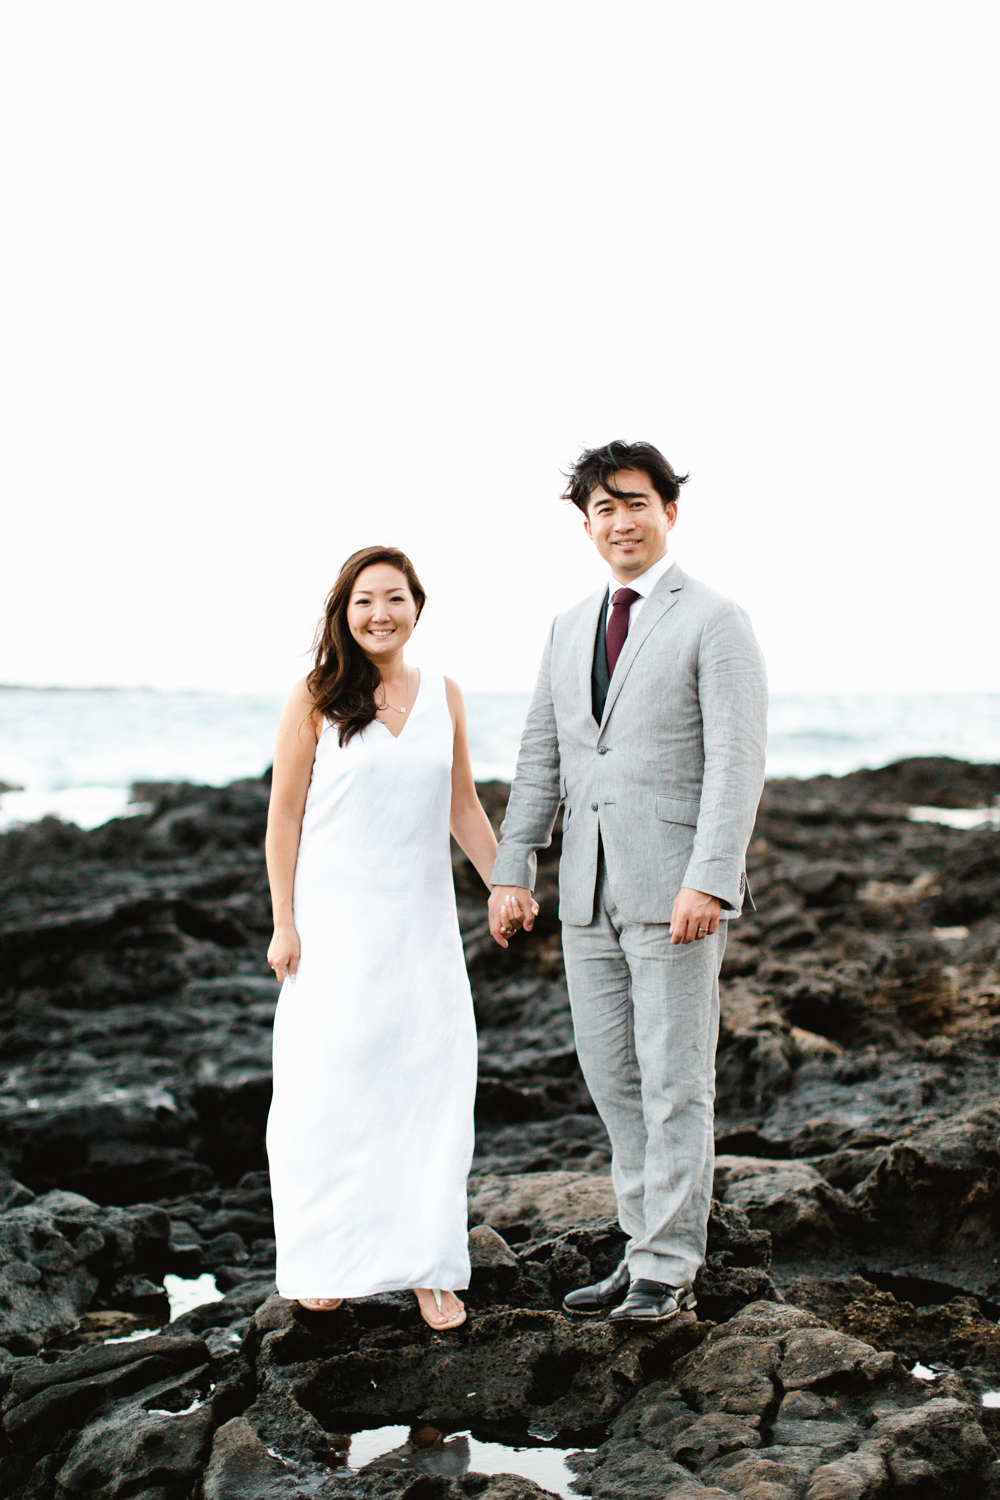 hawaiiweddingphotographer-3058.jpg